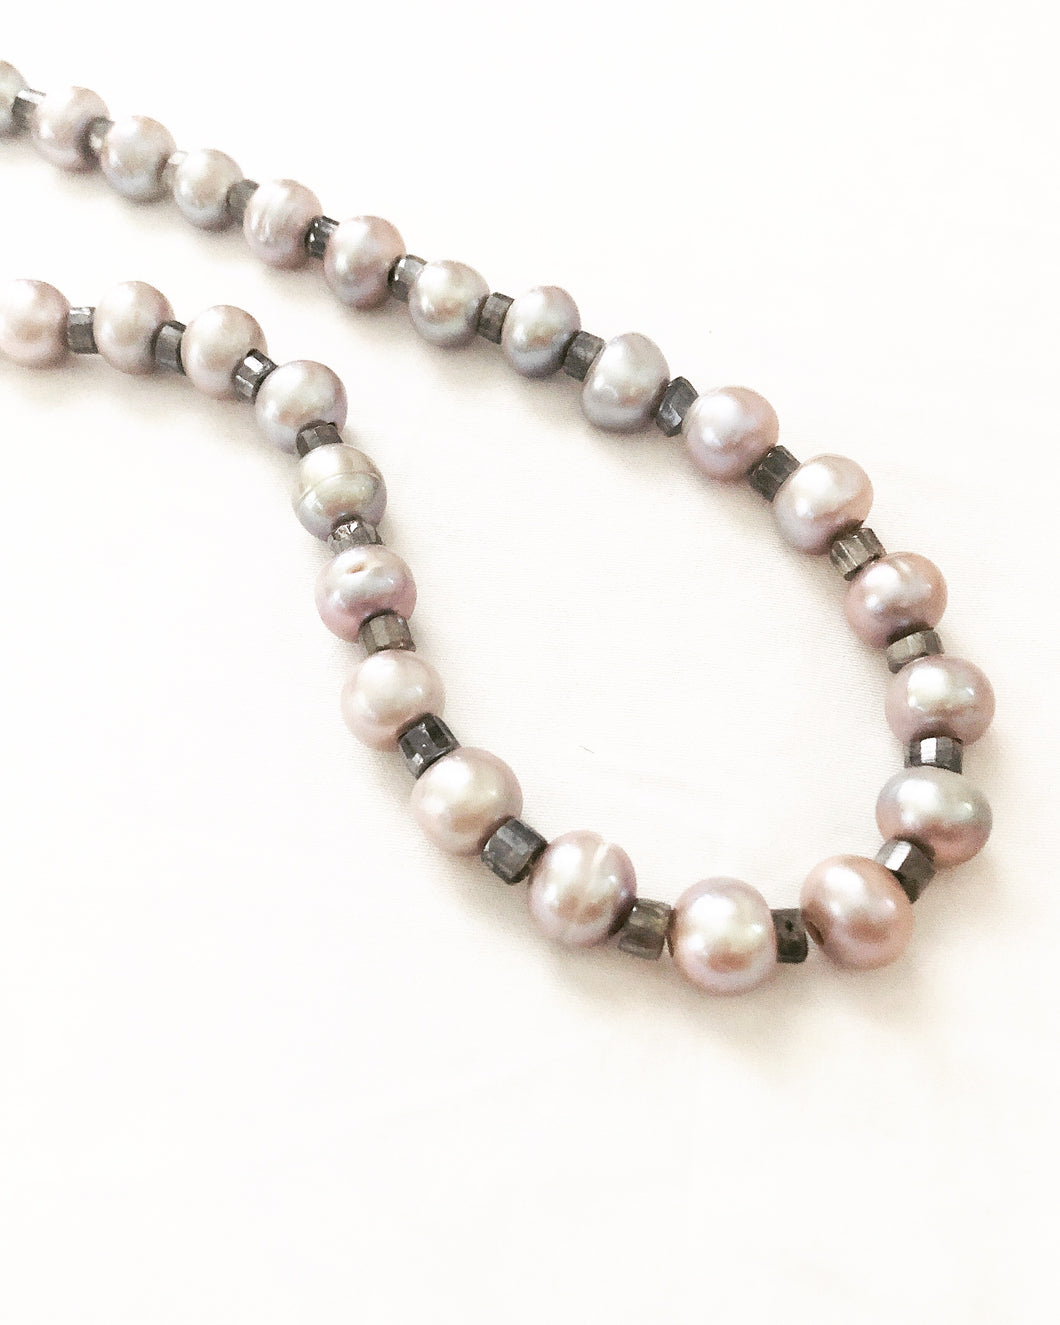 Gray Pearls with a Gemstone Twist!